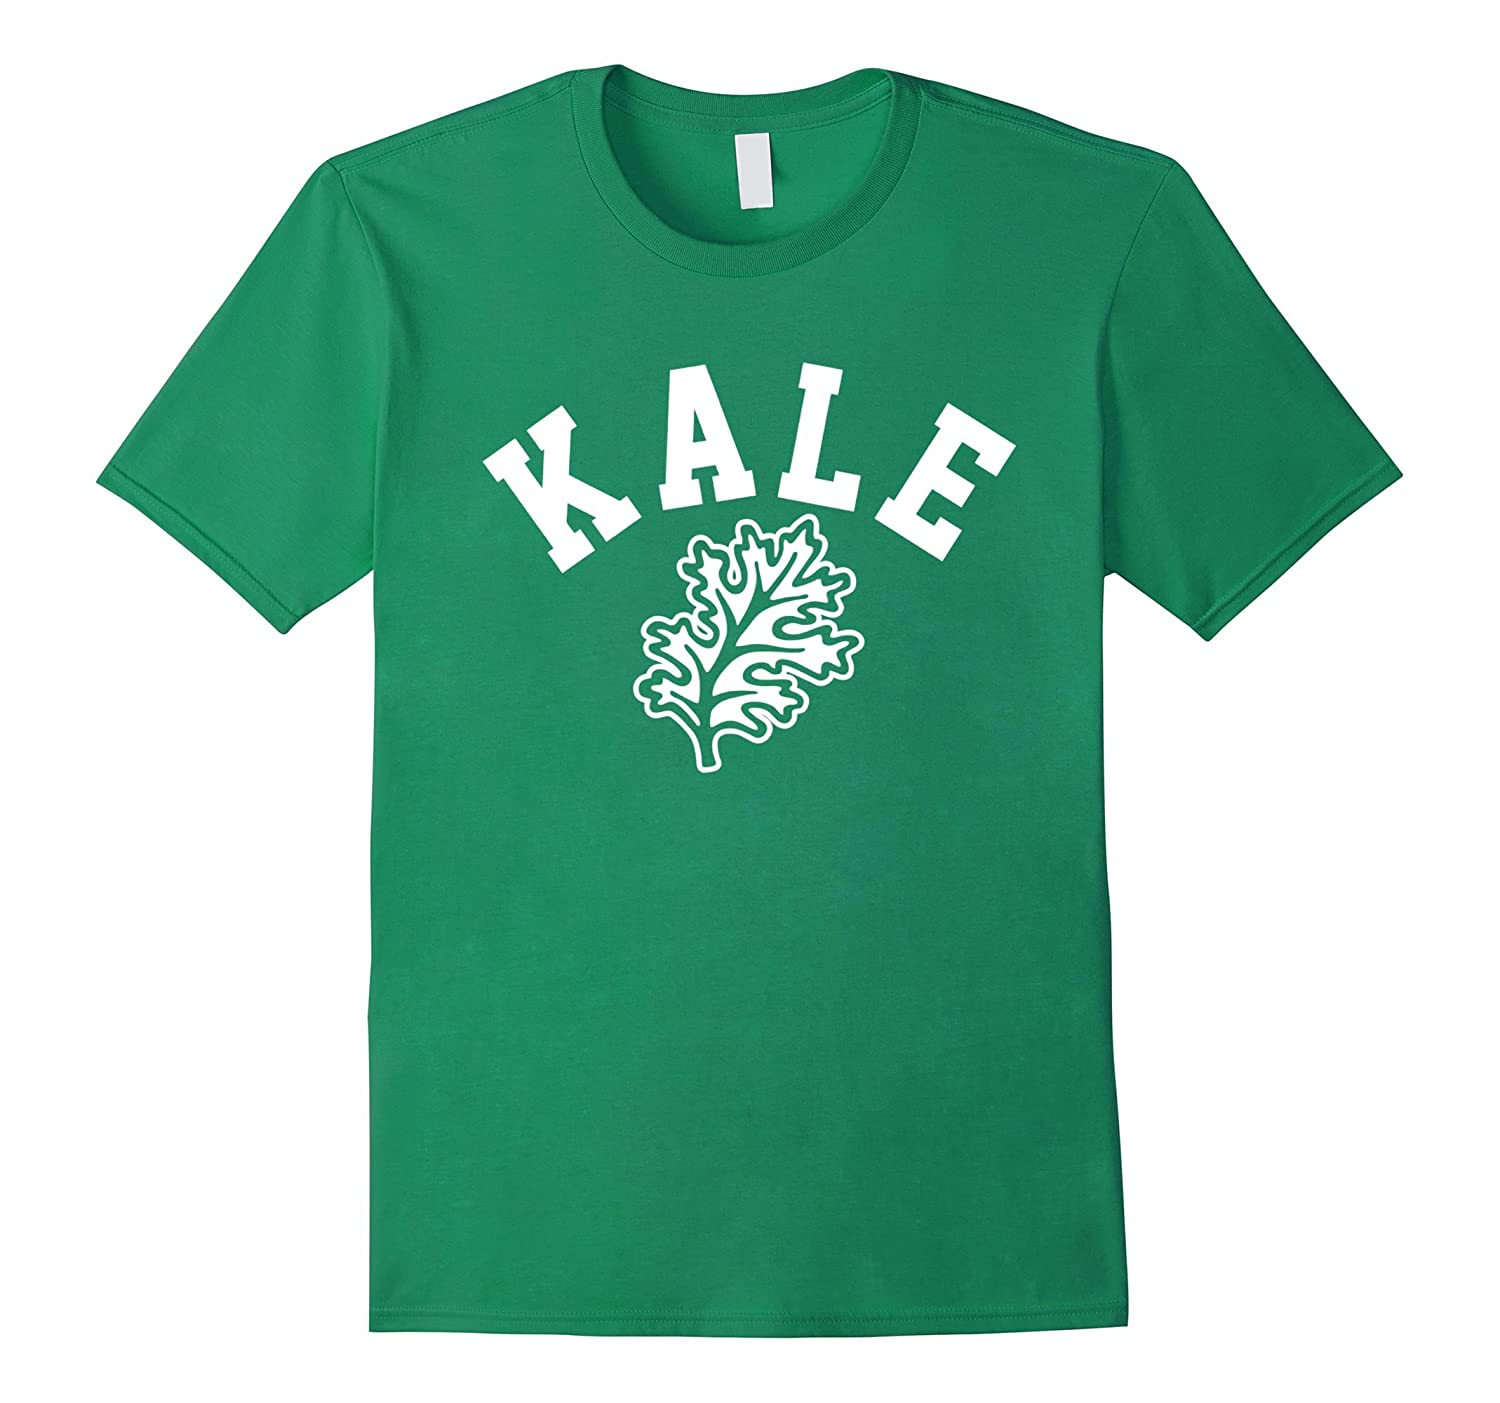 Kale T Shirt-CD